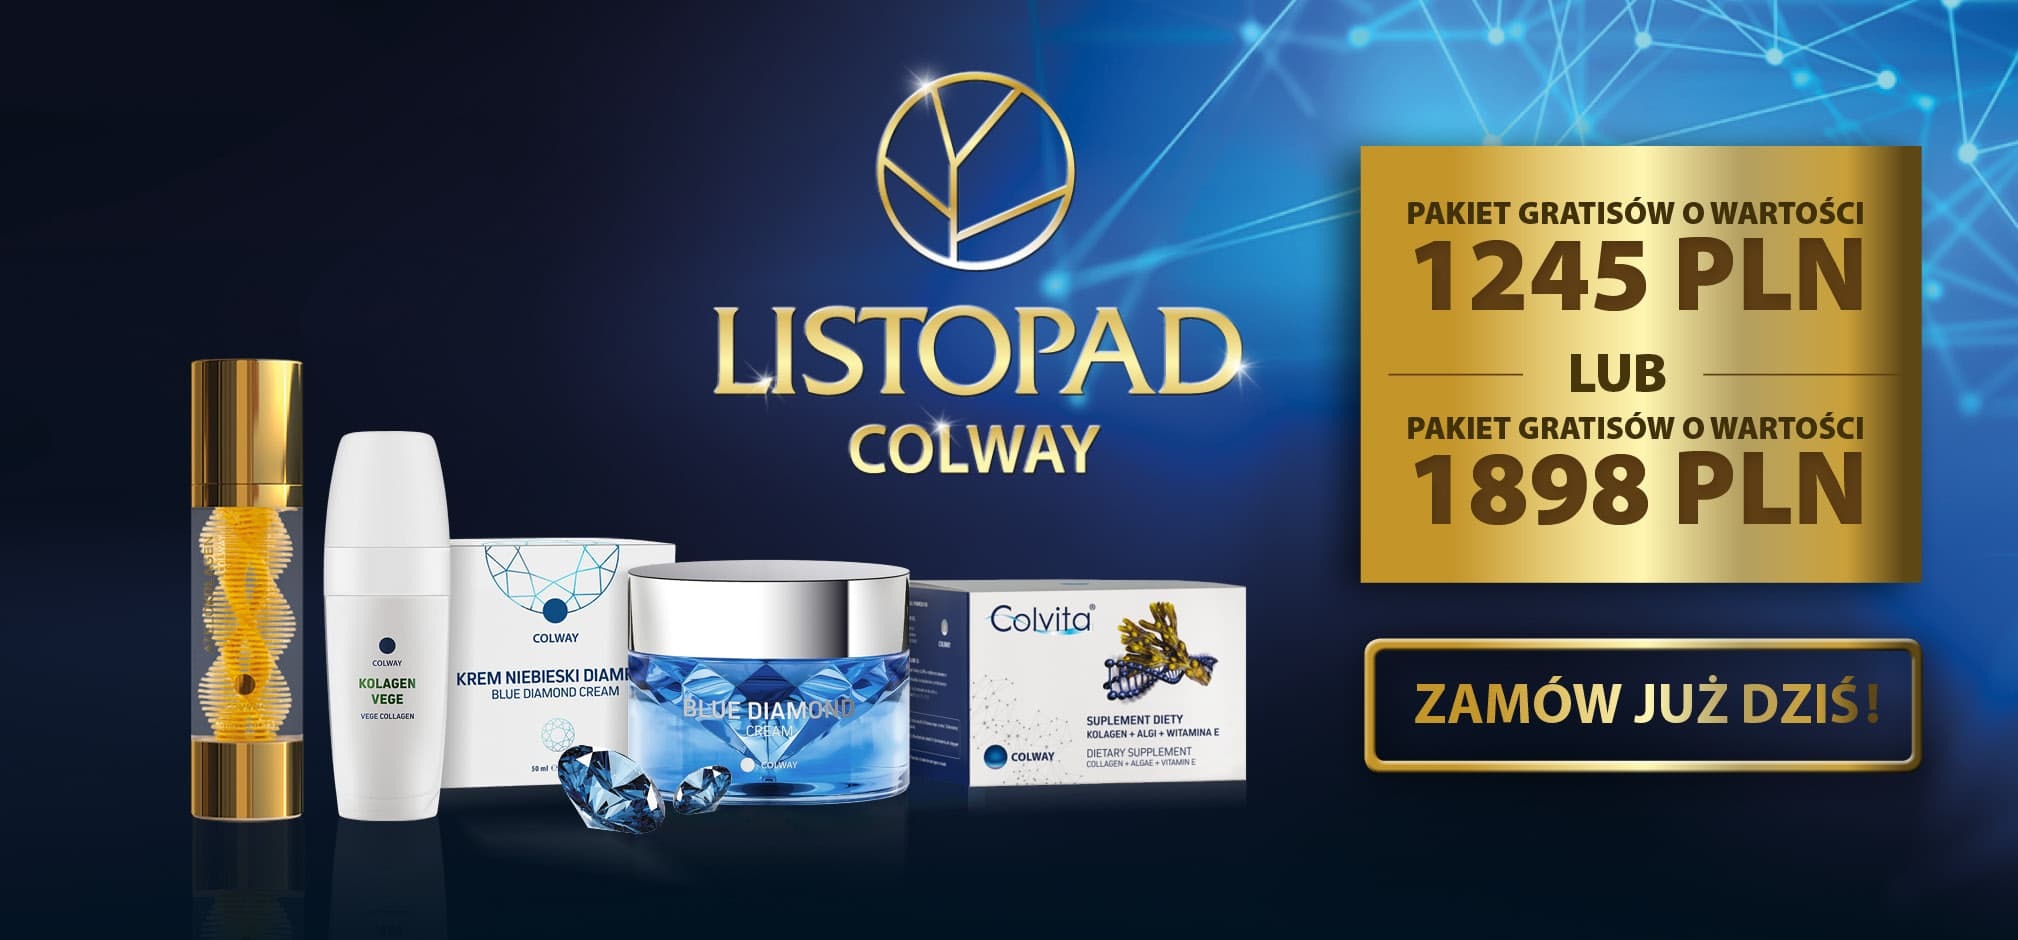 listopad w colway